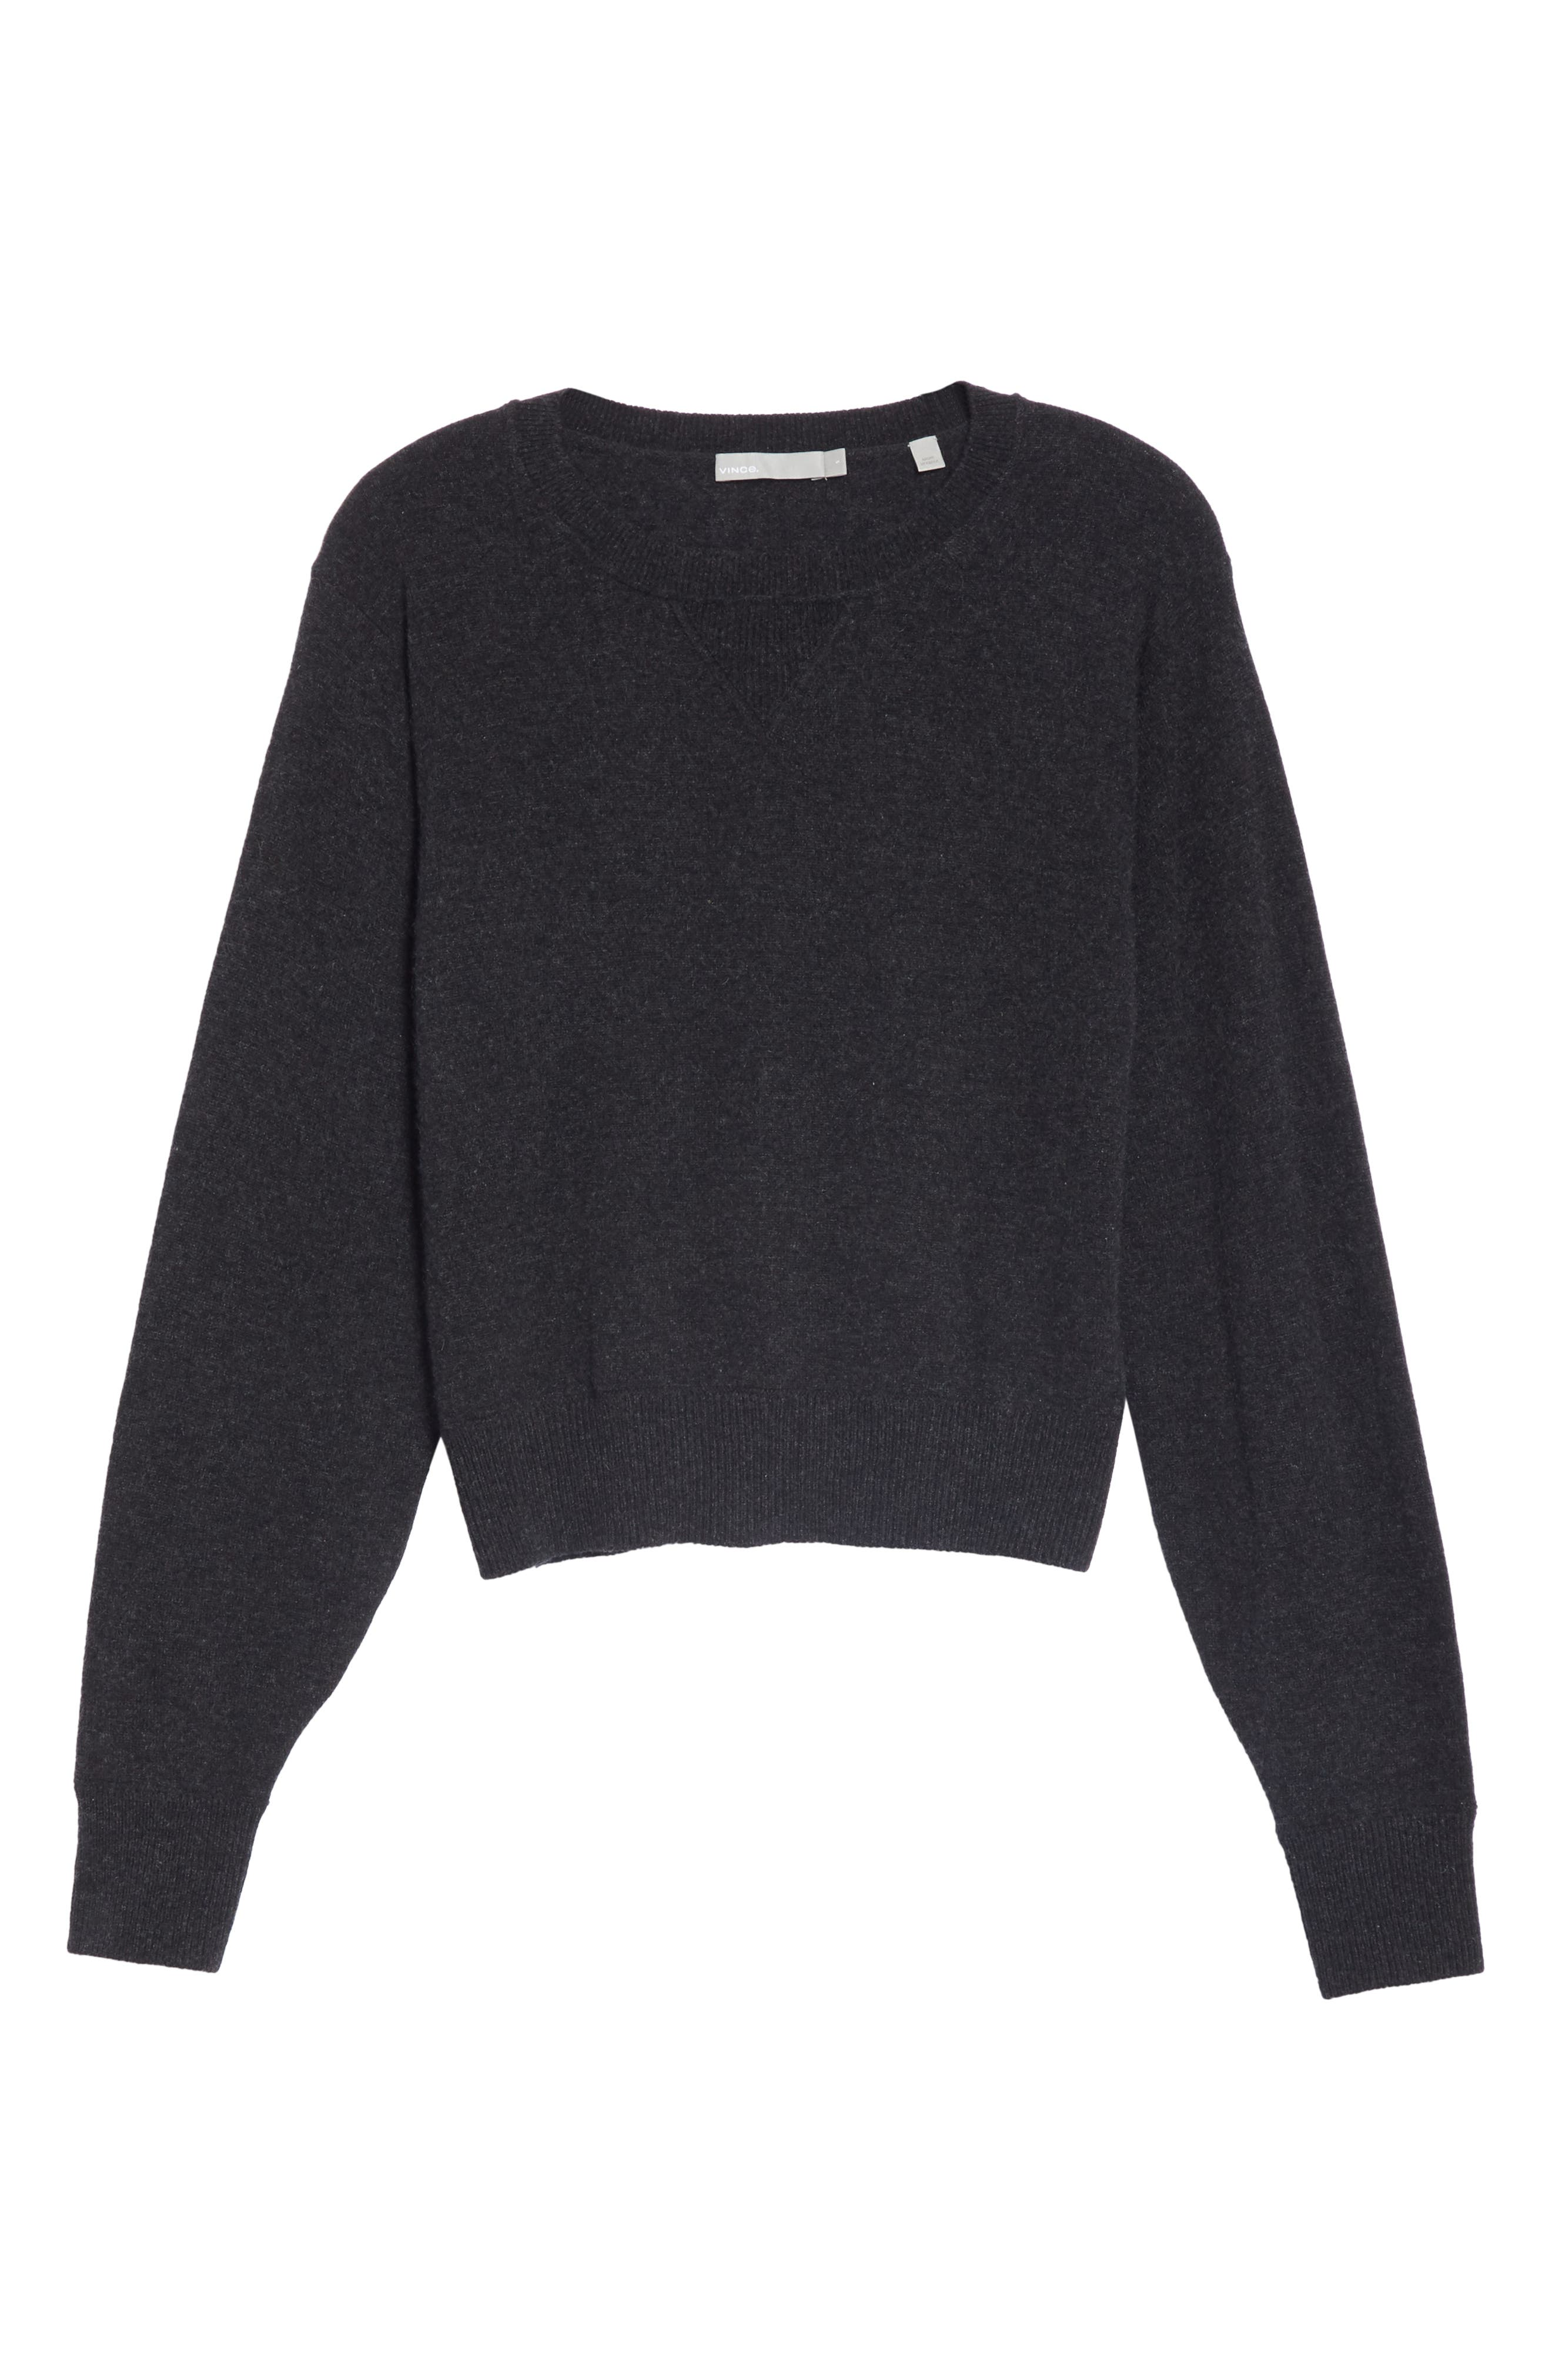 Wool & Cashmere Sweater,                             Alternate thumbnail 6, color,                             CHARCOAL